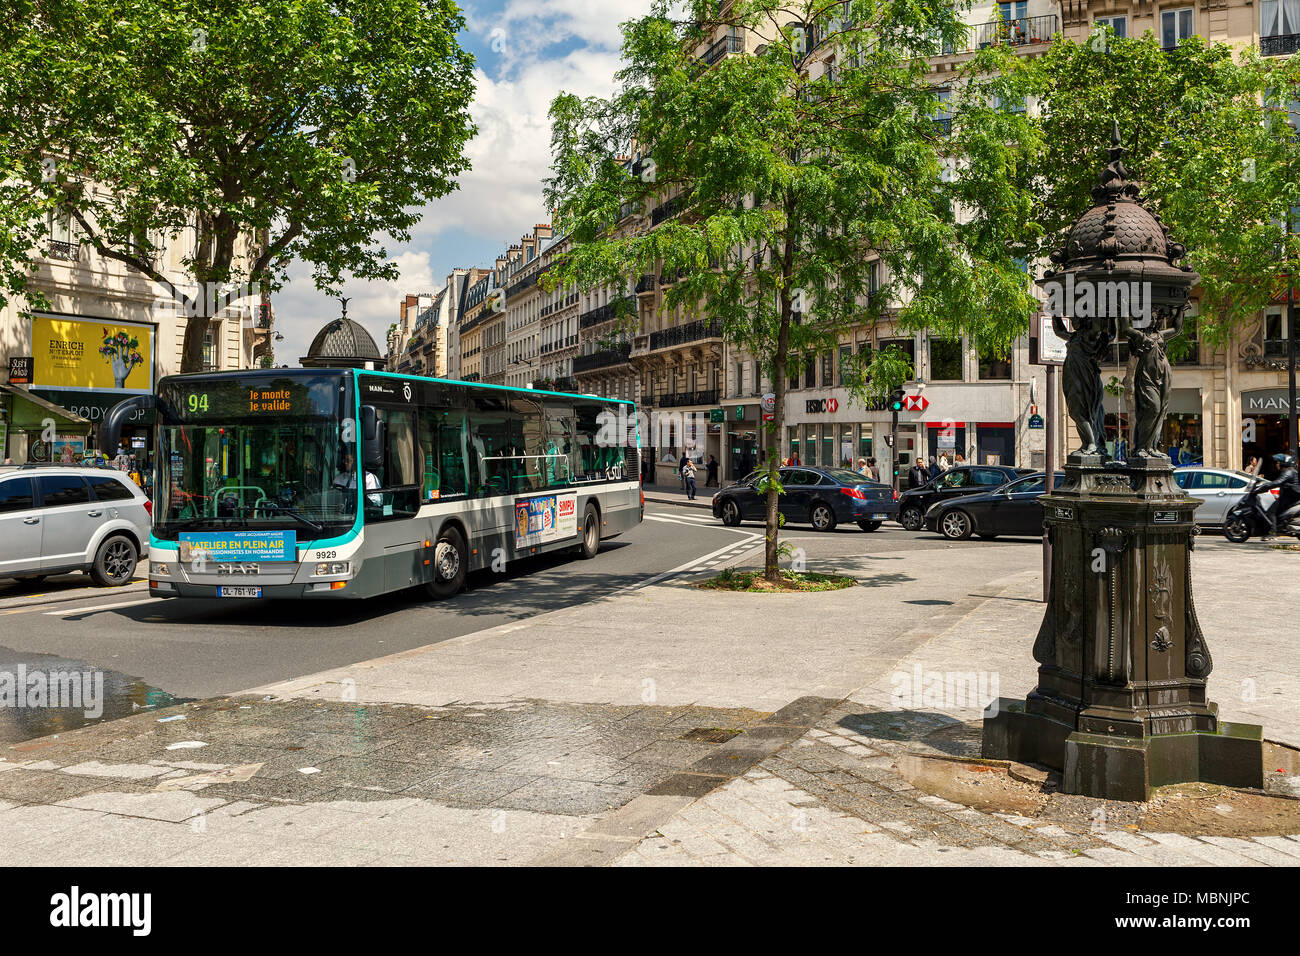 Wallace fountain, public bus and cars on the street of Paris - capital and largest city of France. - Stock Image